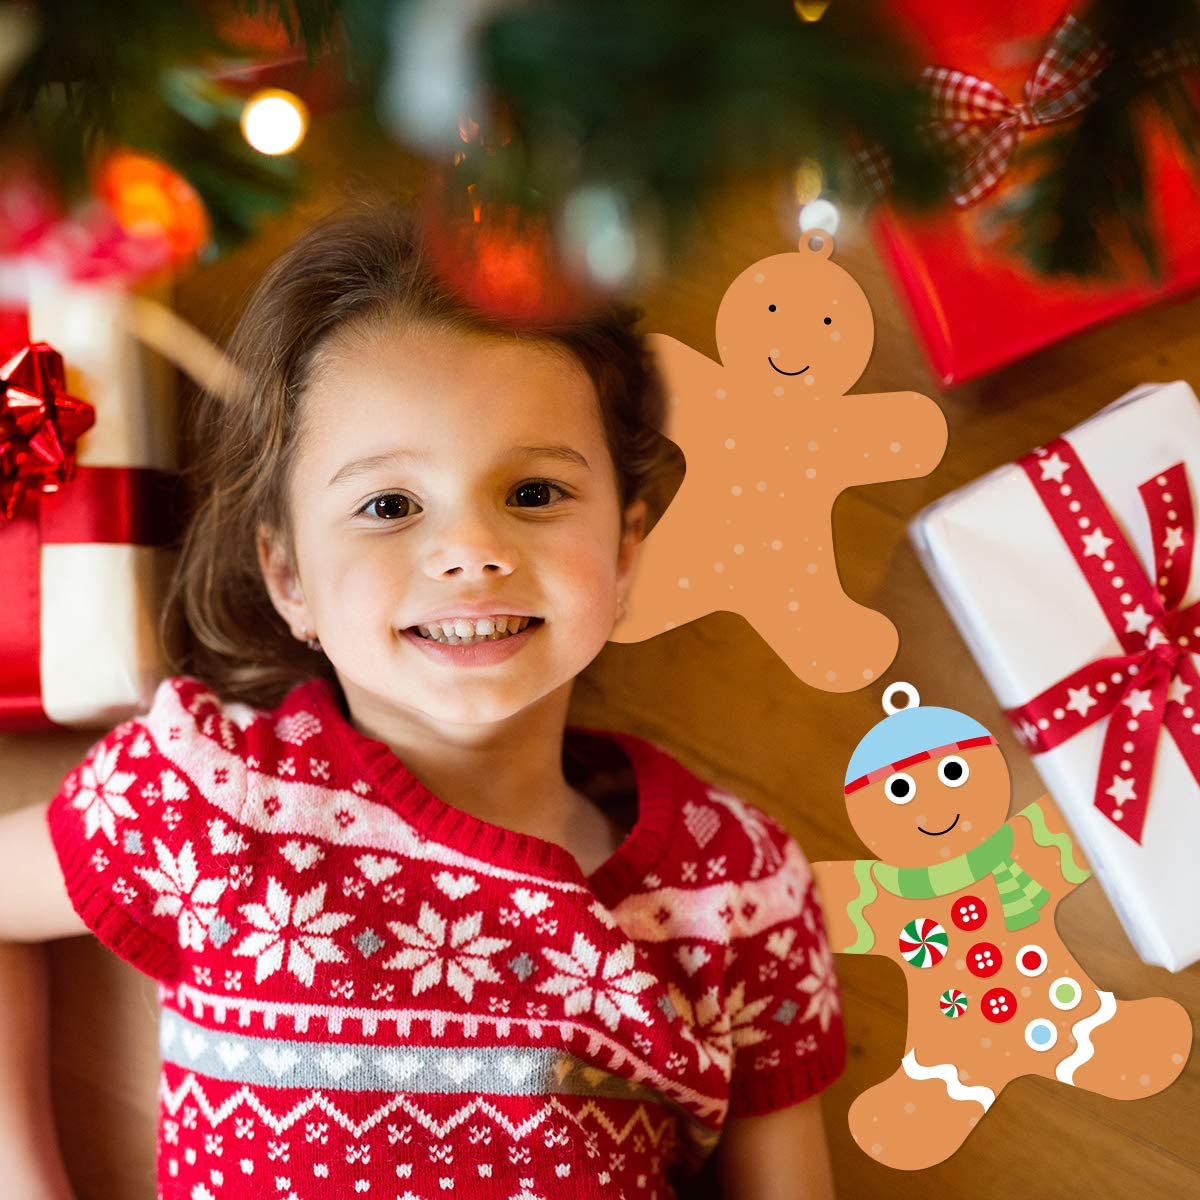 12 Gingerbread Man Craft Kit for Kids DIY Create Your Own Foam Gingerbread Man Ornament Self-Adhesive Sticker Sheets Fun Holiday Gifts